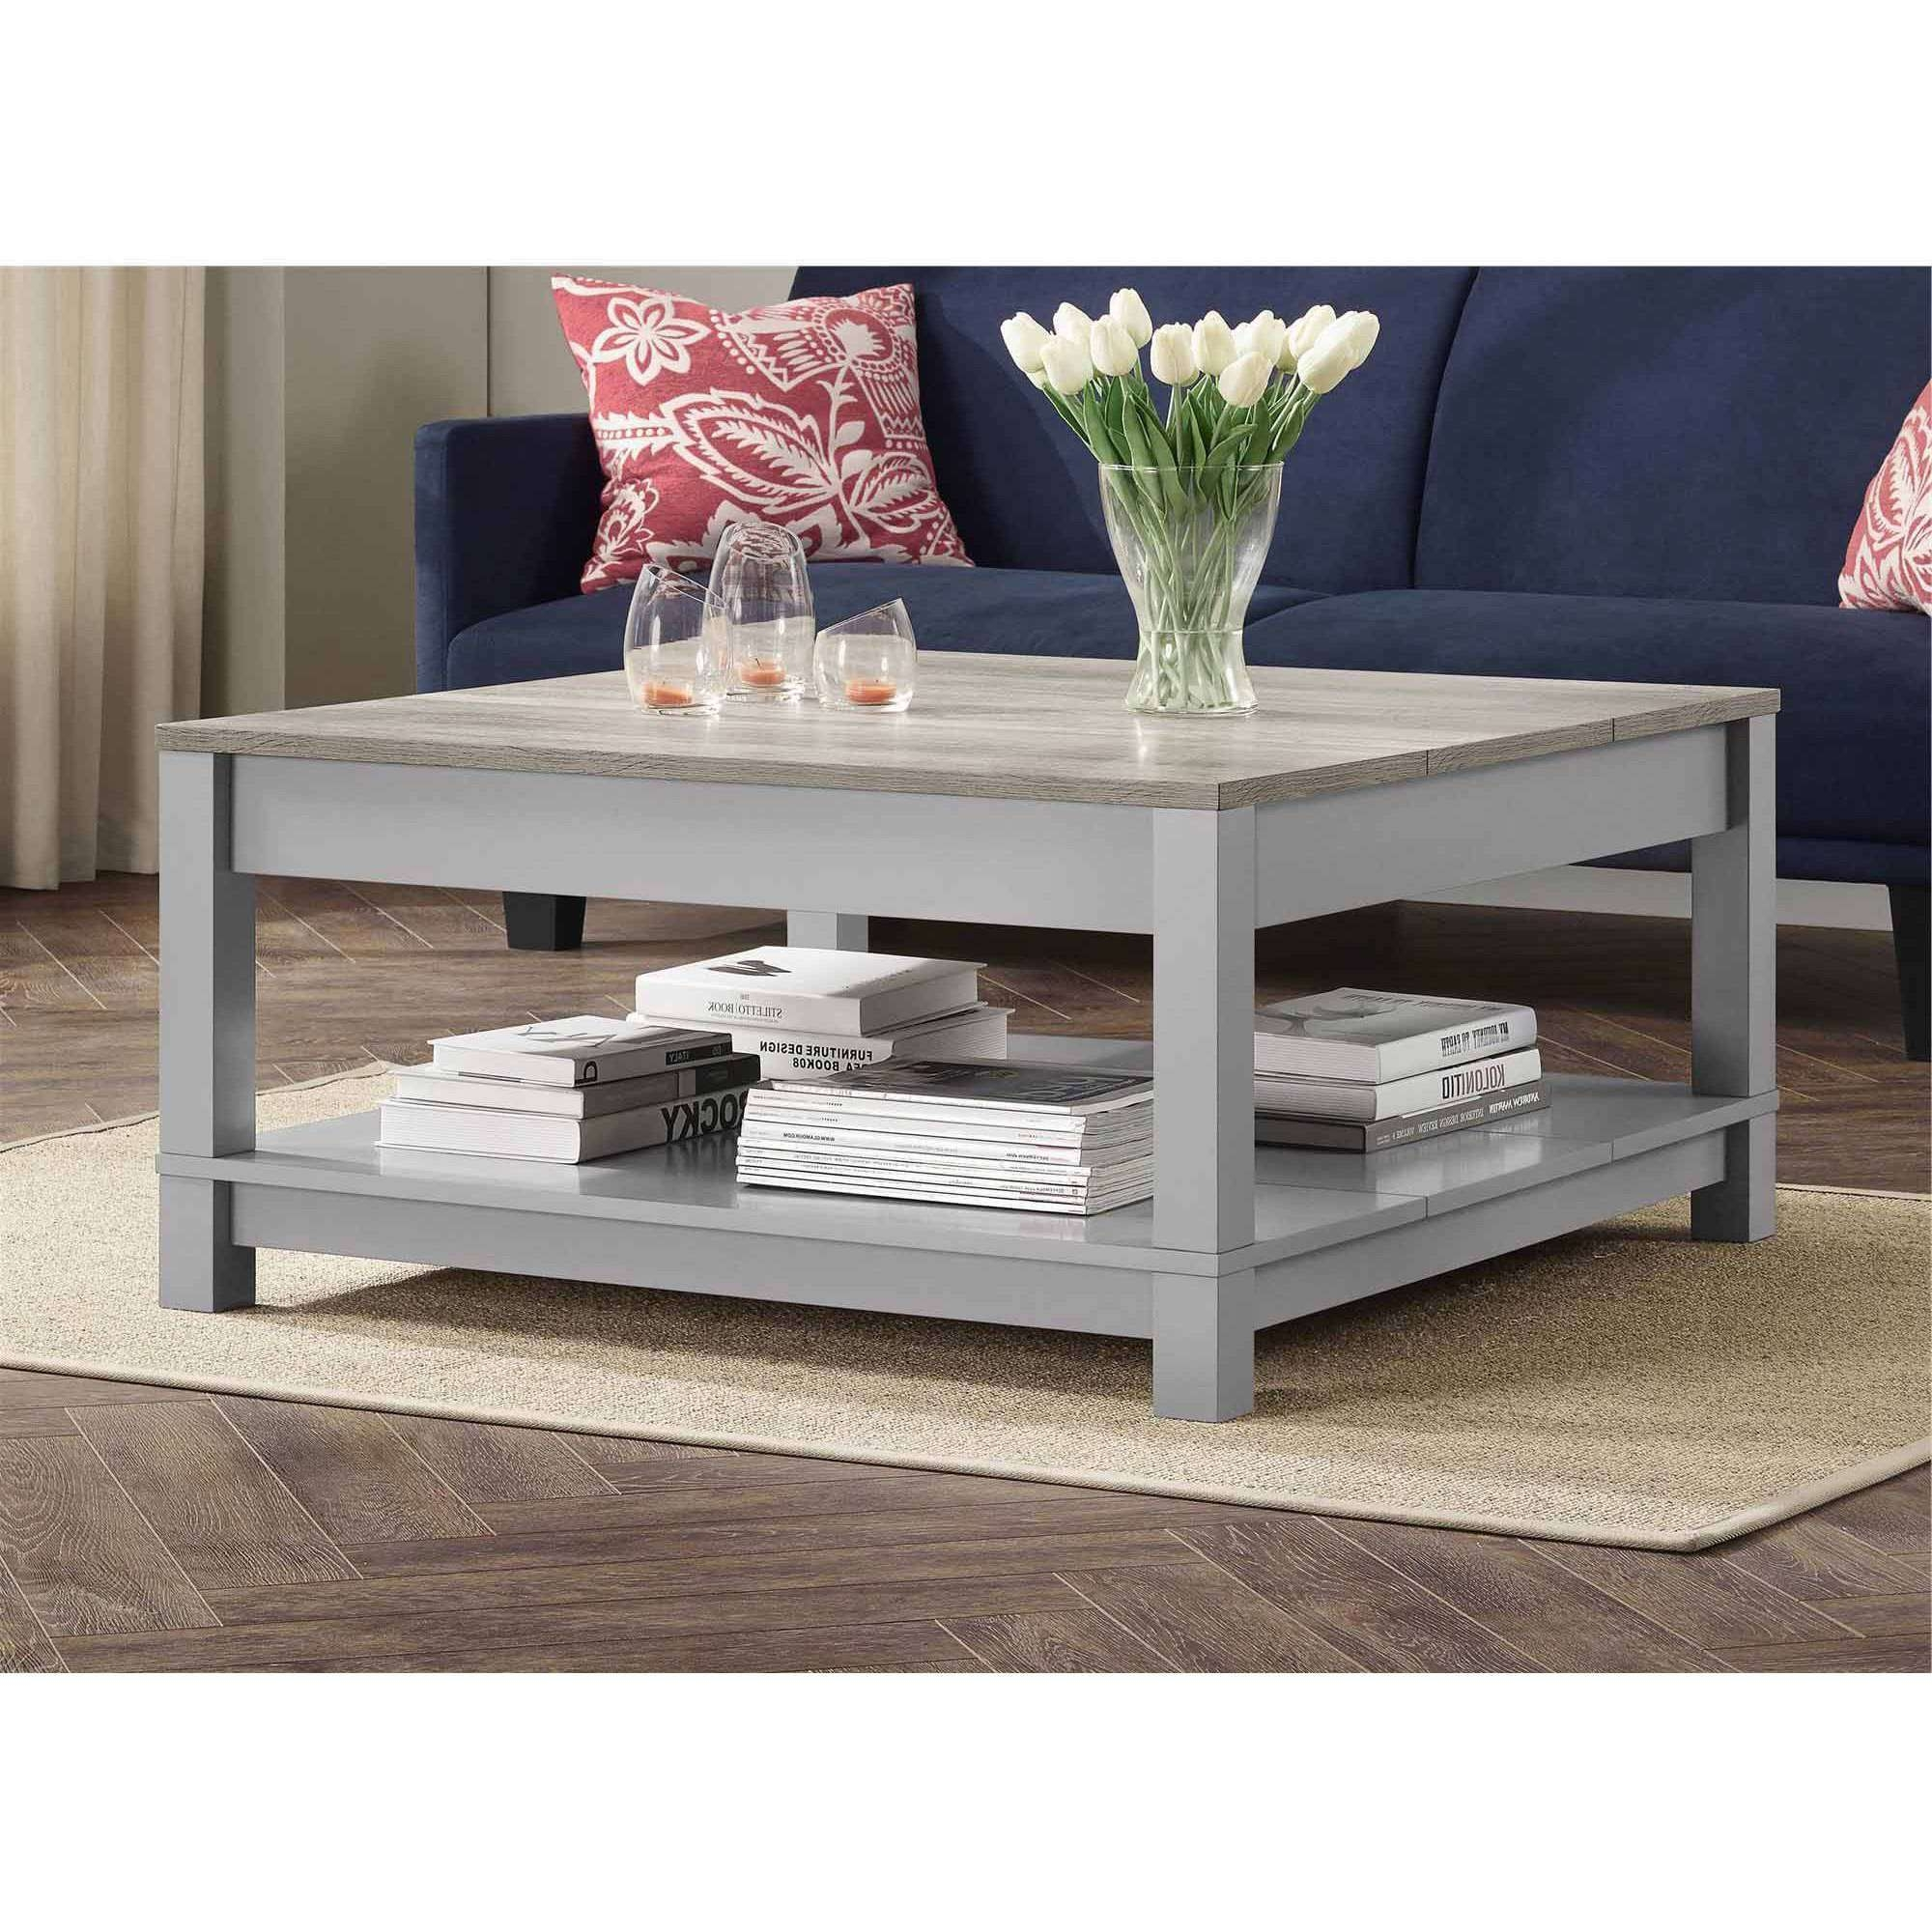 Fashionable Rustic Coffee Tables With Bottom Shelf In Better Homes And Gardens Langley Bay Coffee Table, Multiple Colors (View 6 of 20)